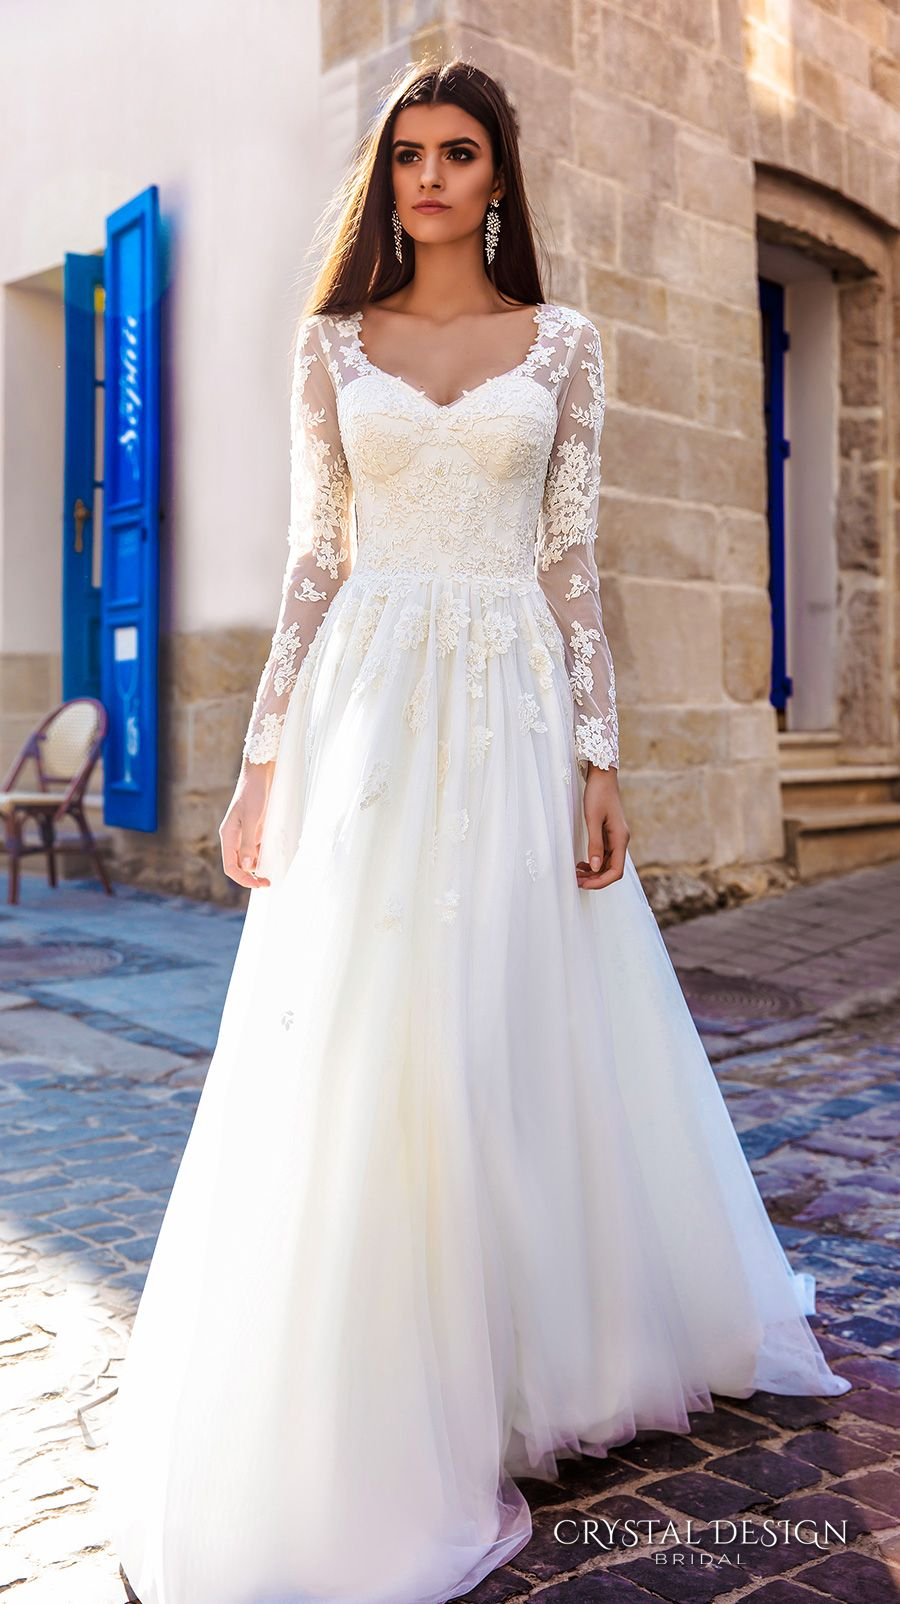 Crystal design wedding dresses lace bodice siena and chapel